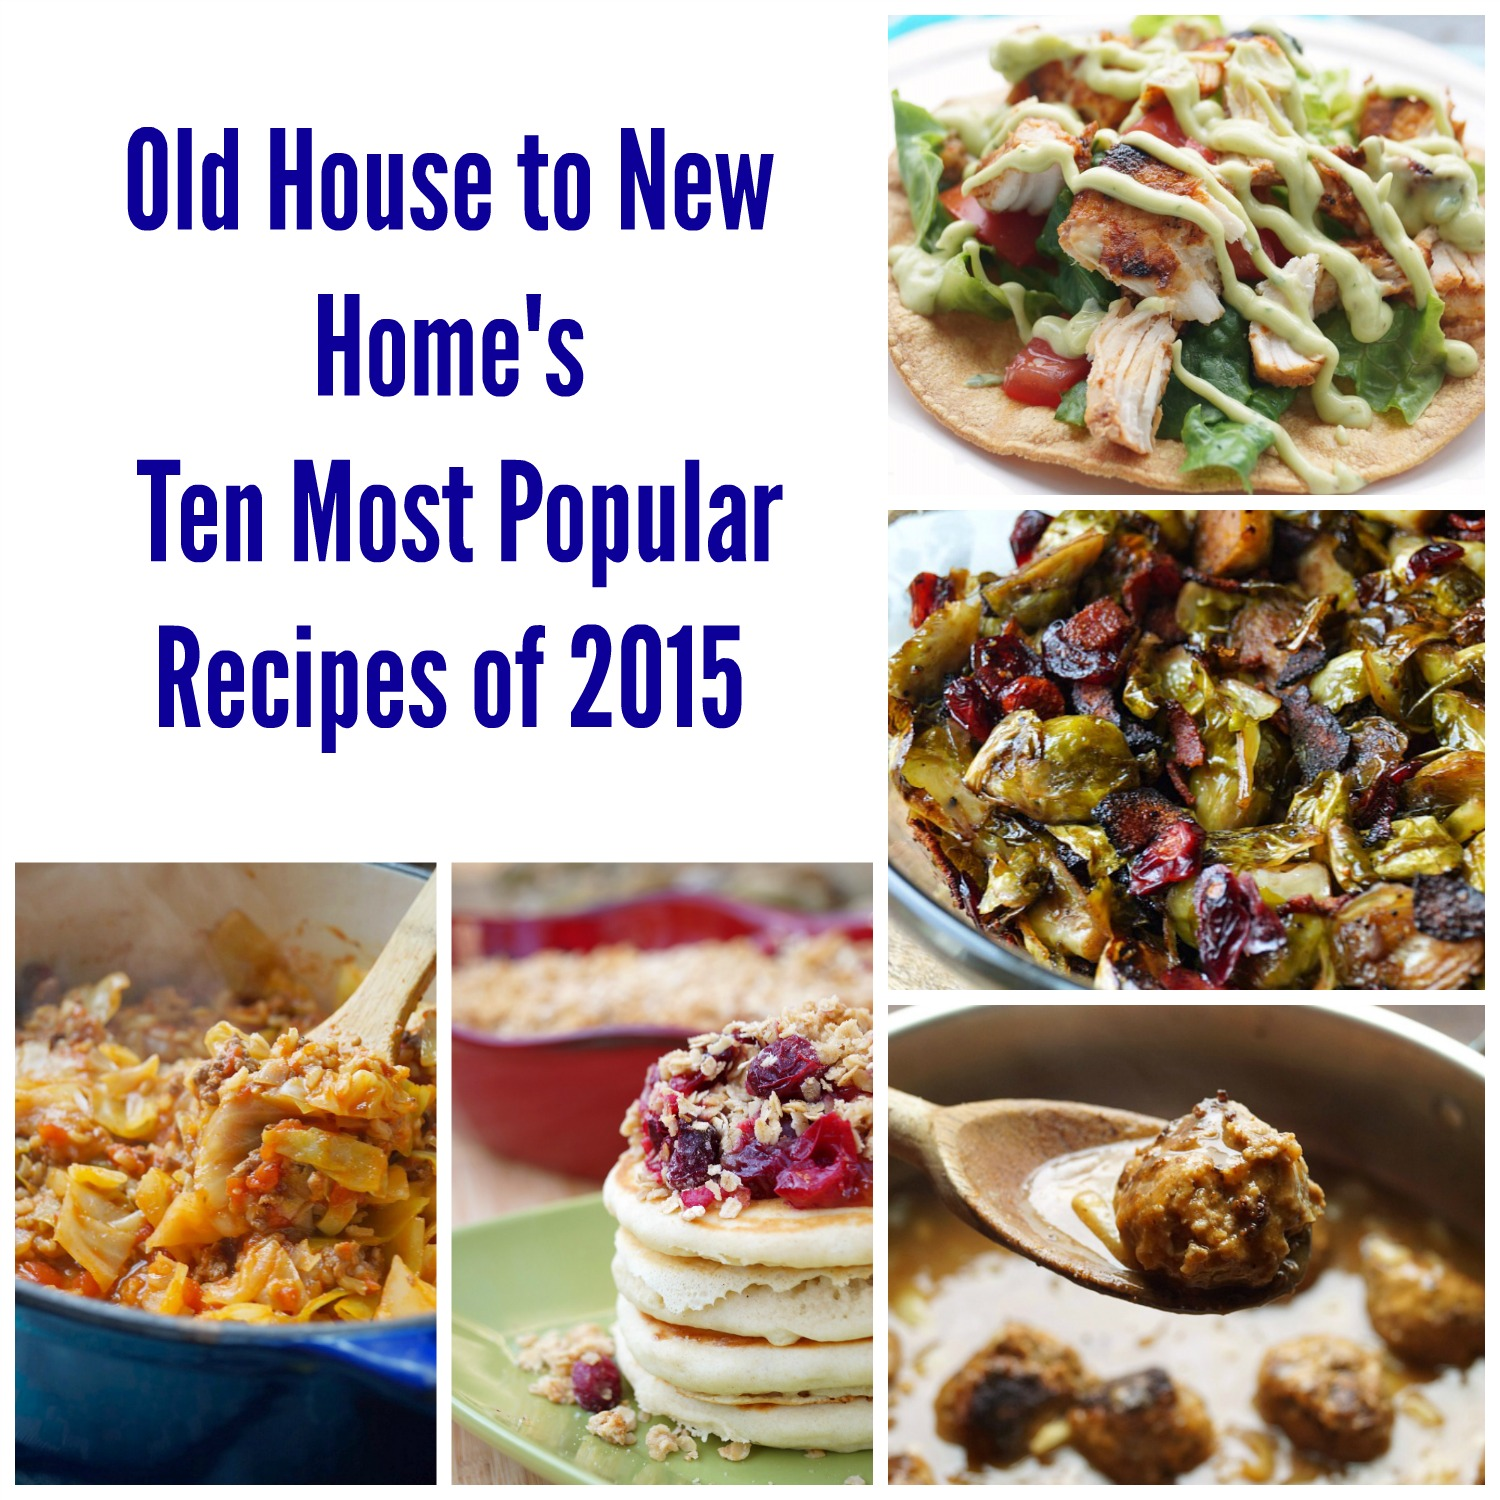 Old House to New Home's Top Recipes of 2015!